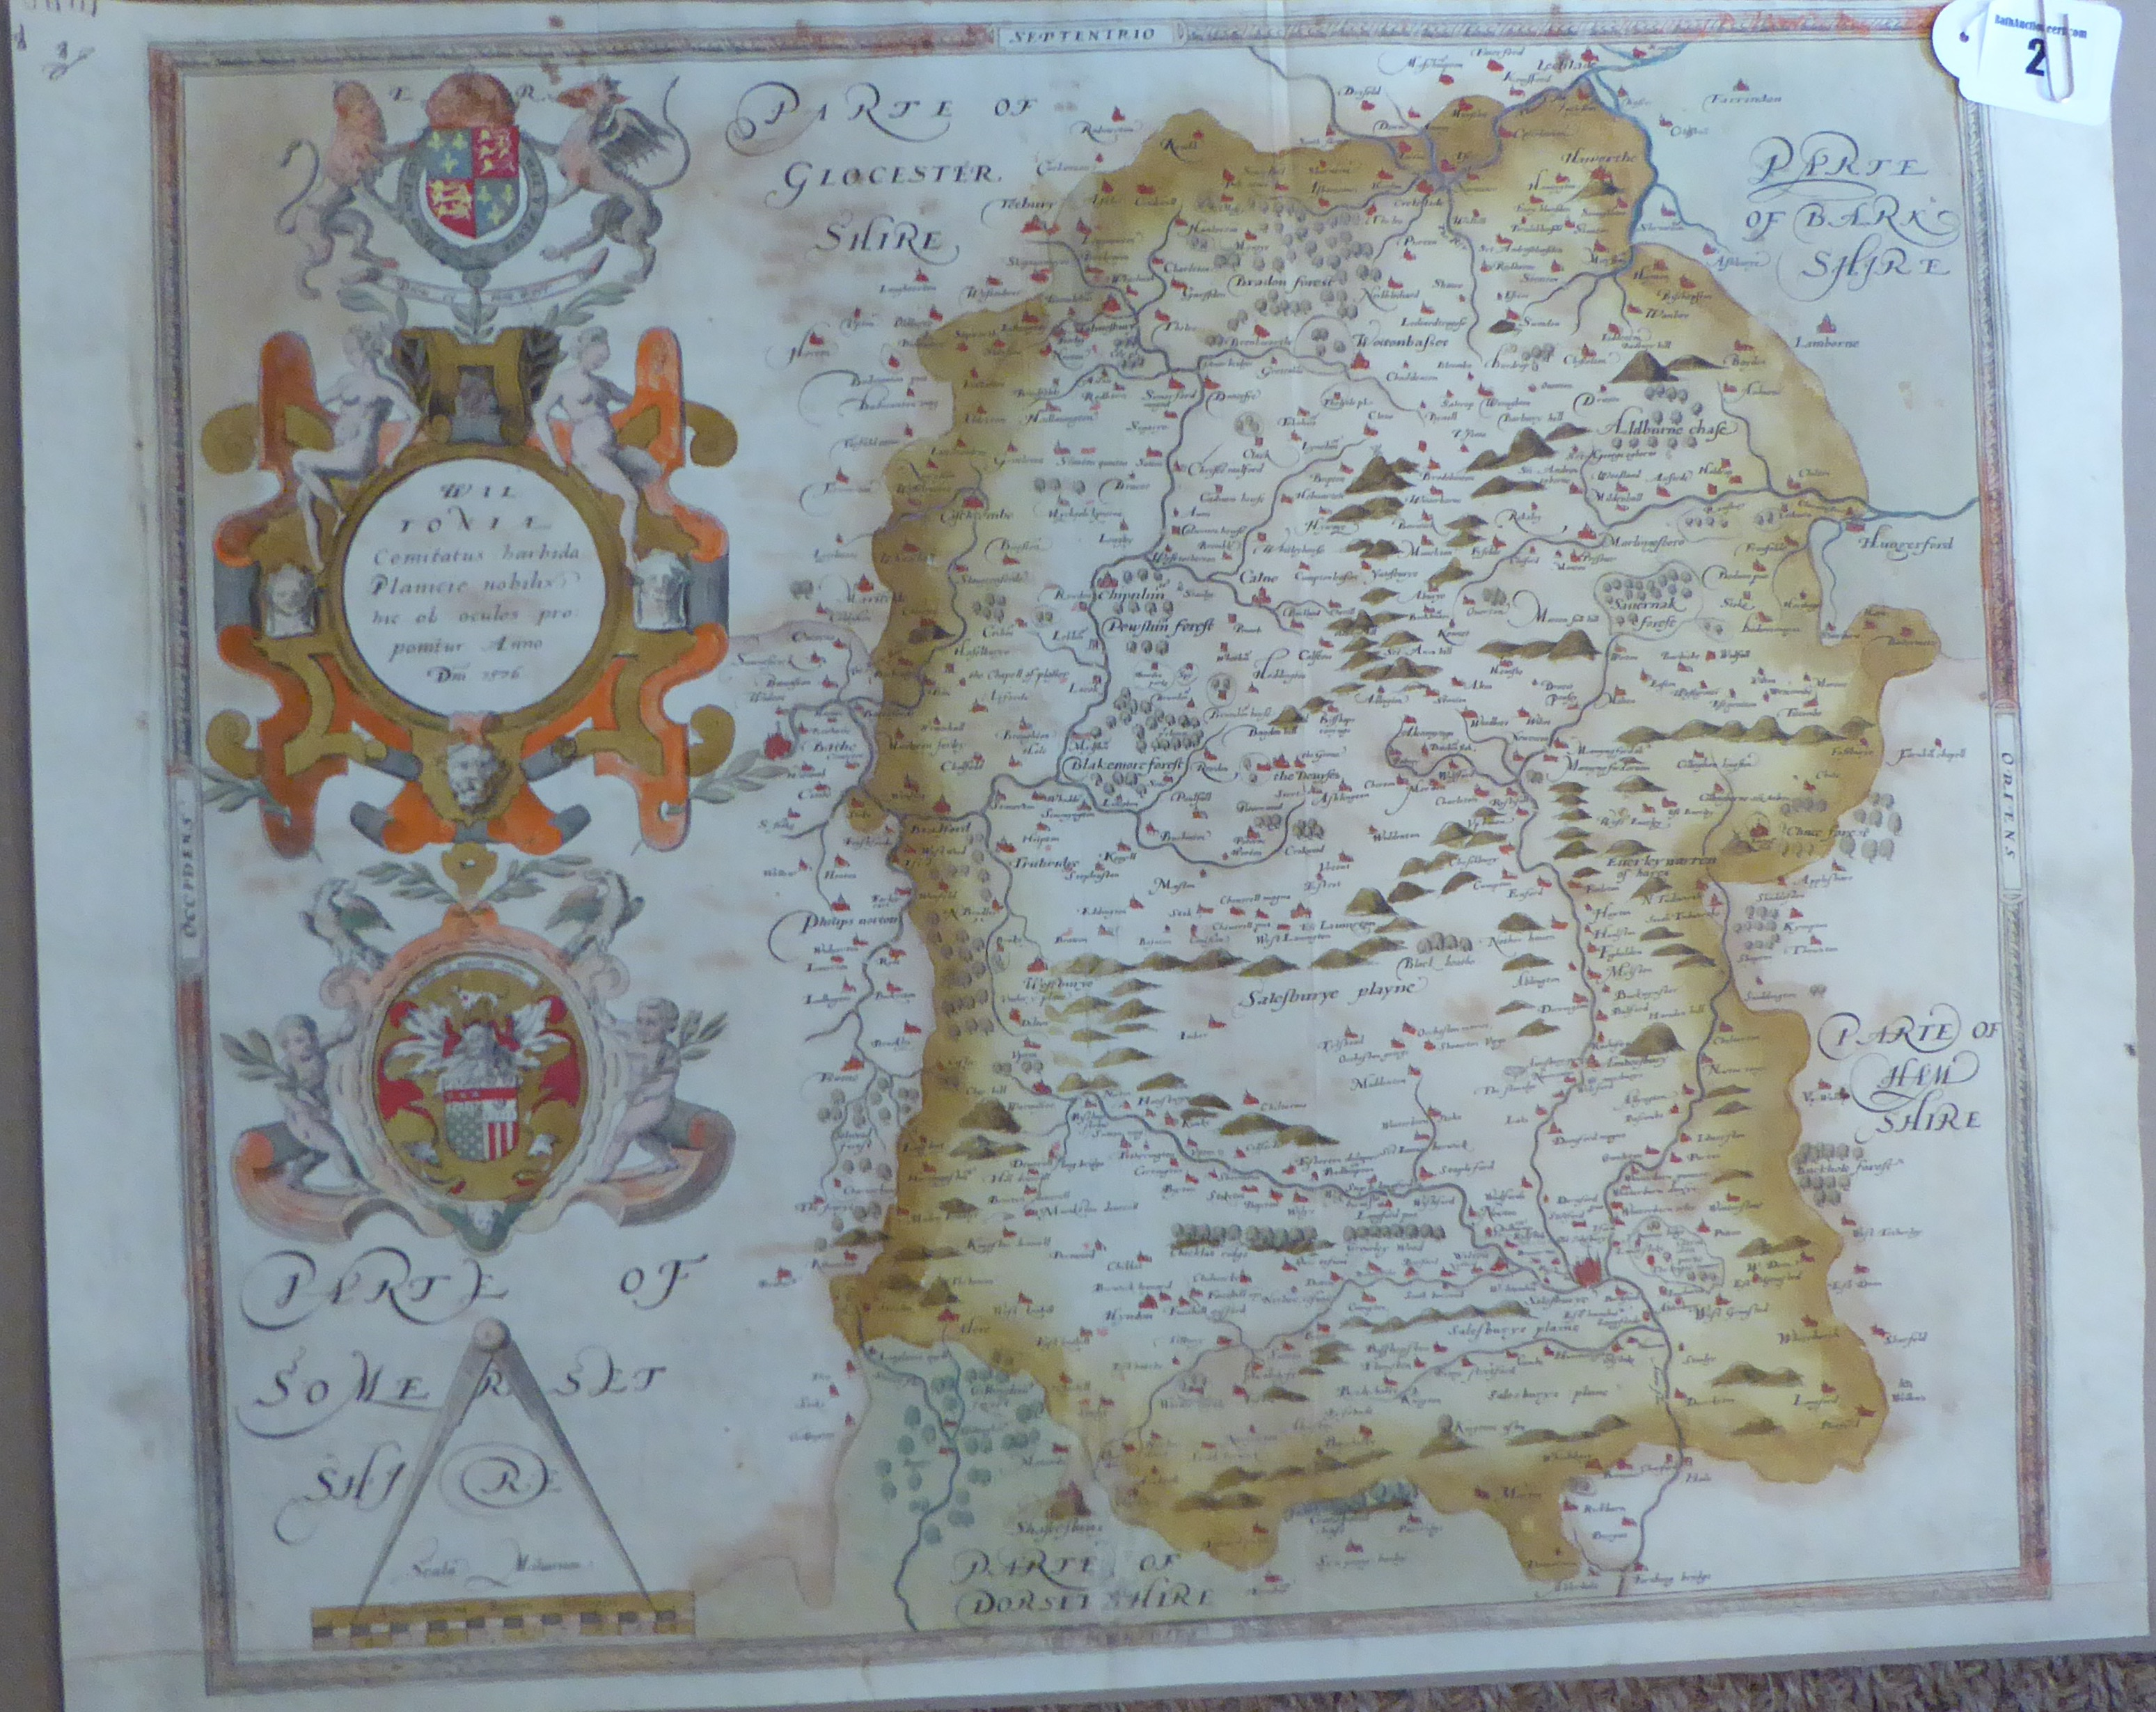 Lot 2 - A C16th hand coloured copper engraved map of Wiltshire C1579 by Christopher Saxton